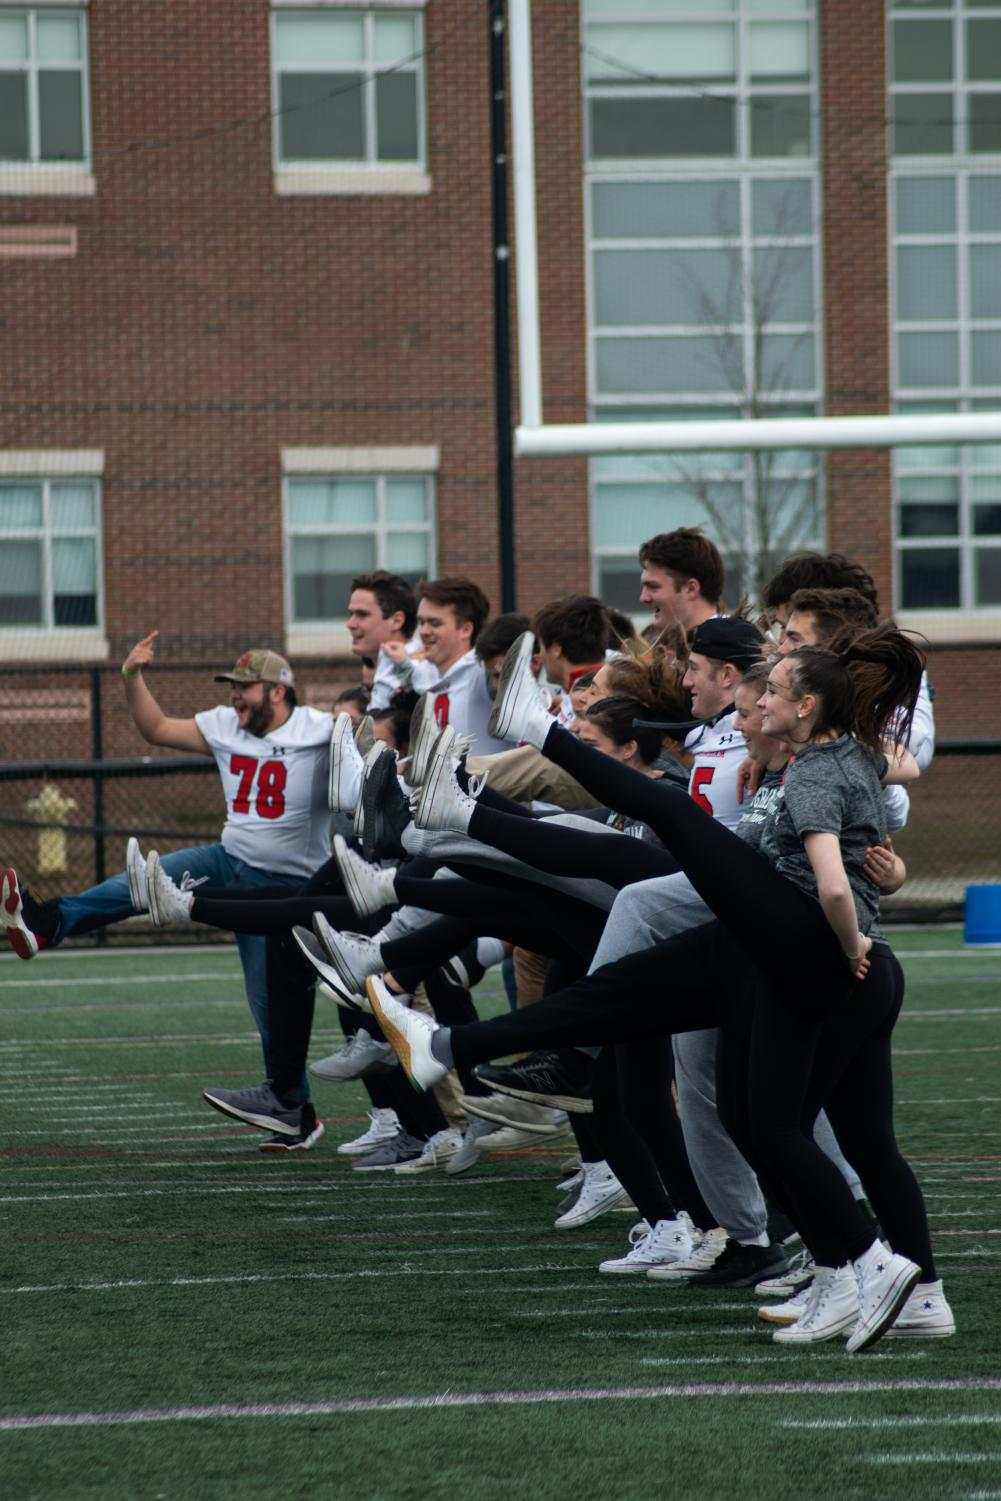 In a amusing event, the Football and Dance team showed their moves in an incredible dance routine.